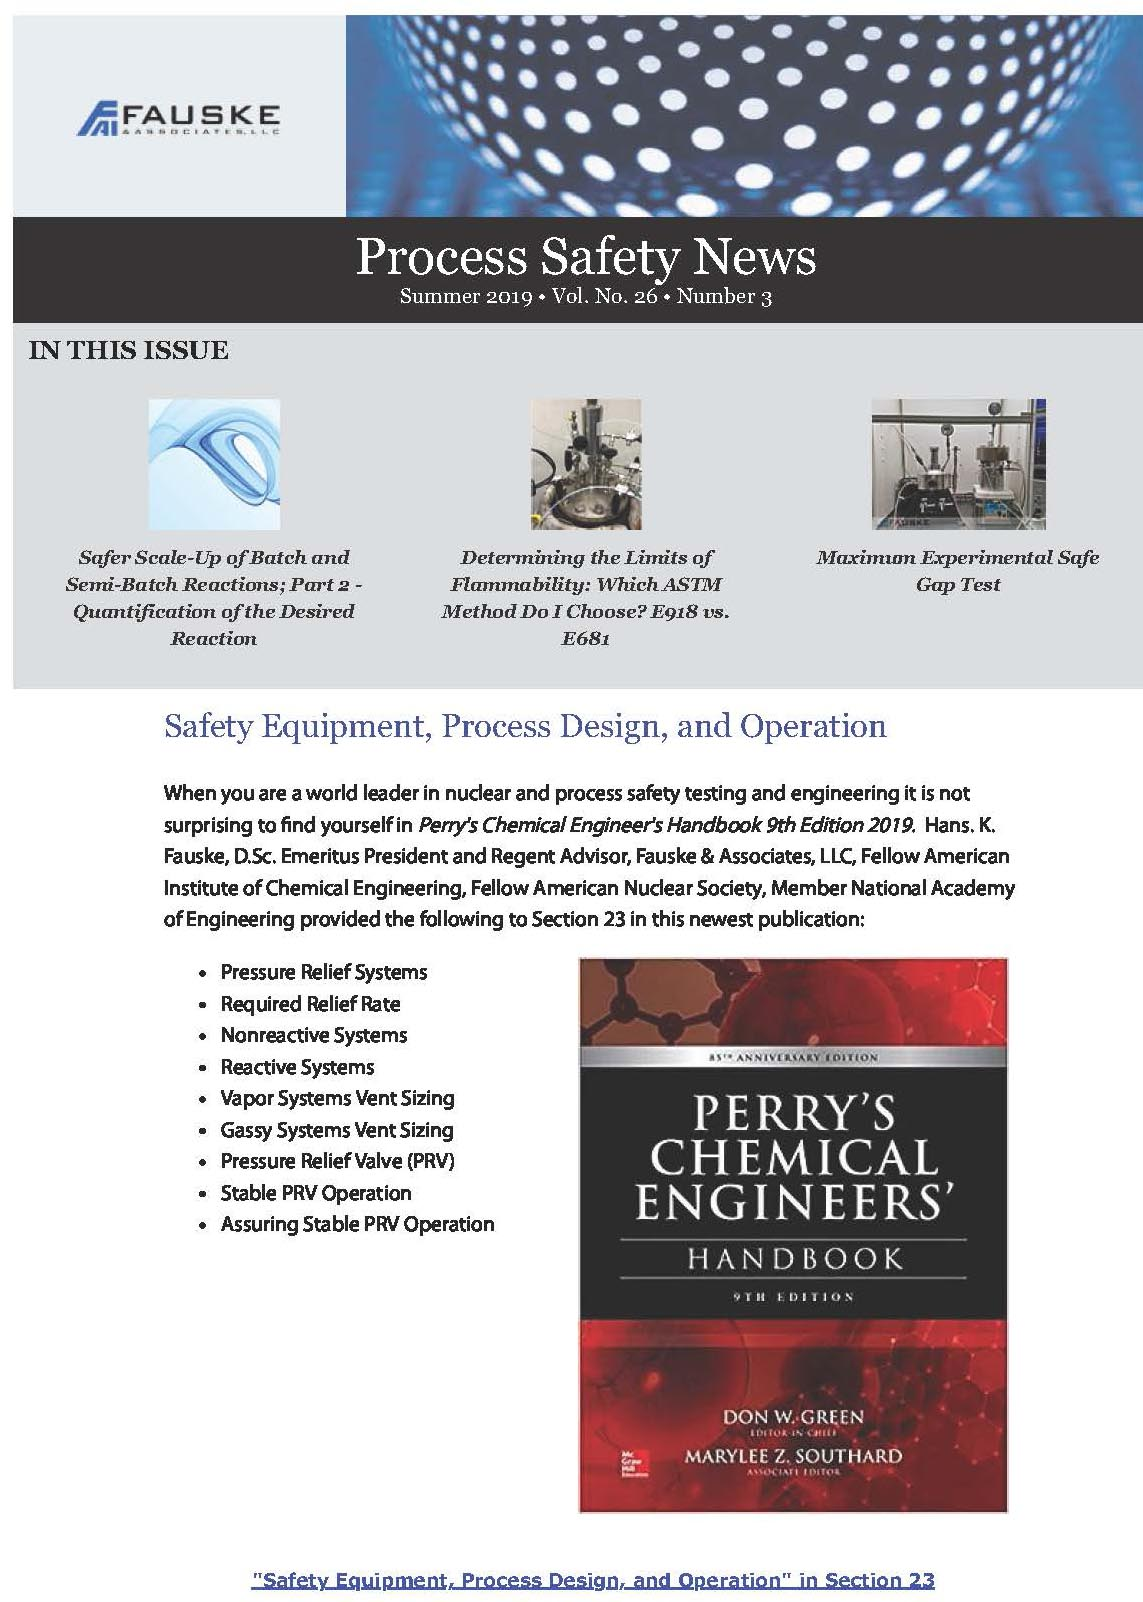 Process Safety News Summer 2019 Edition __New Format!